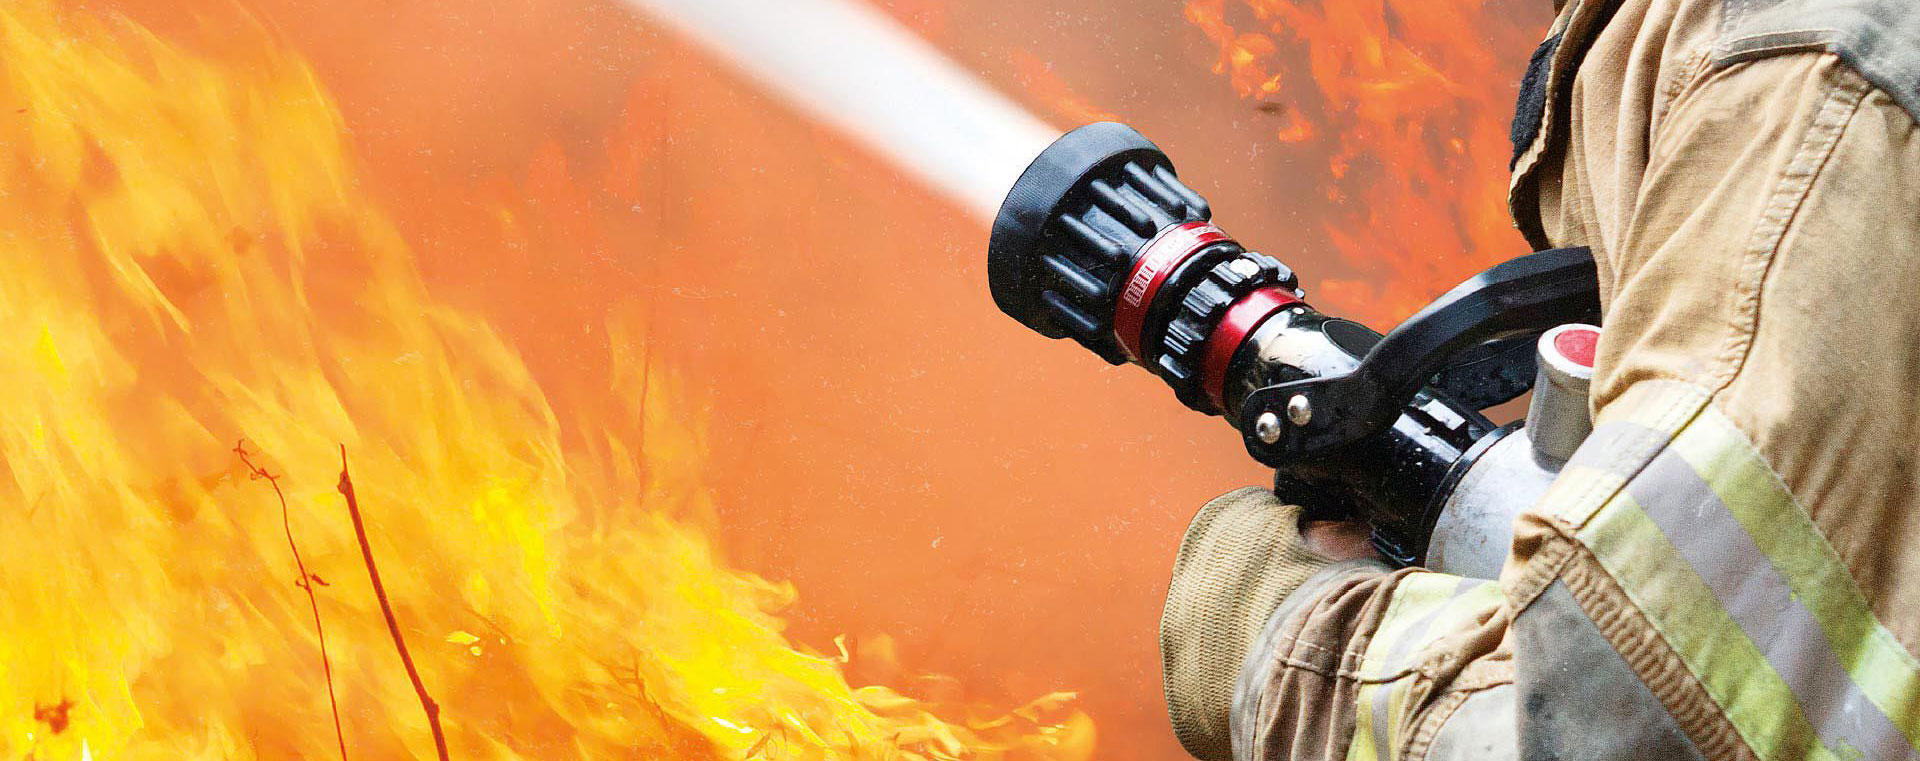 What are the precautions for fire hose wiring?